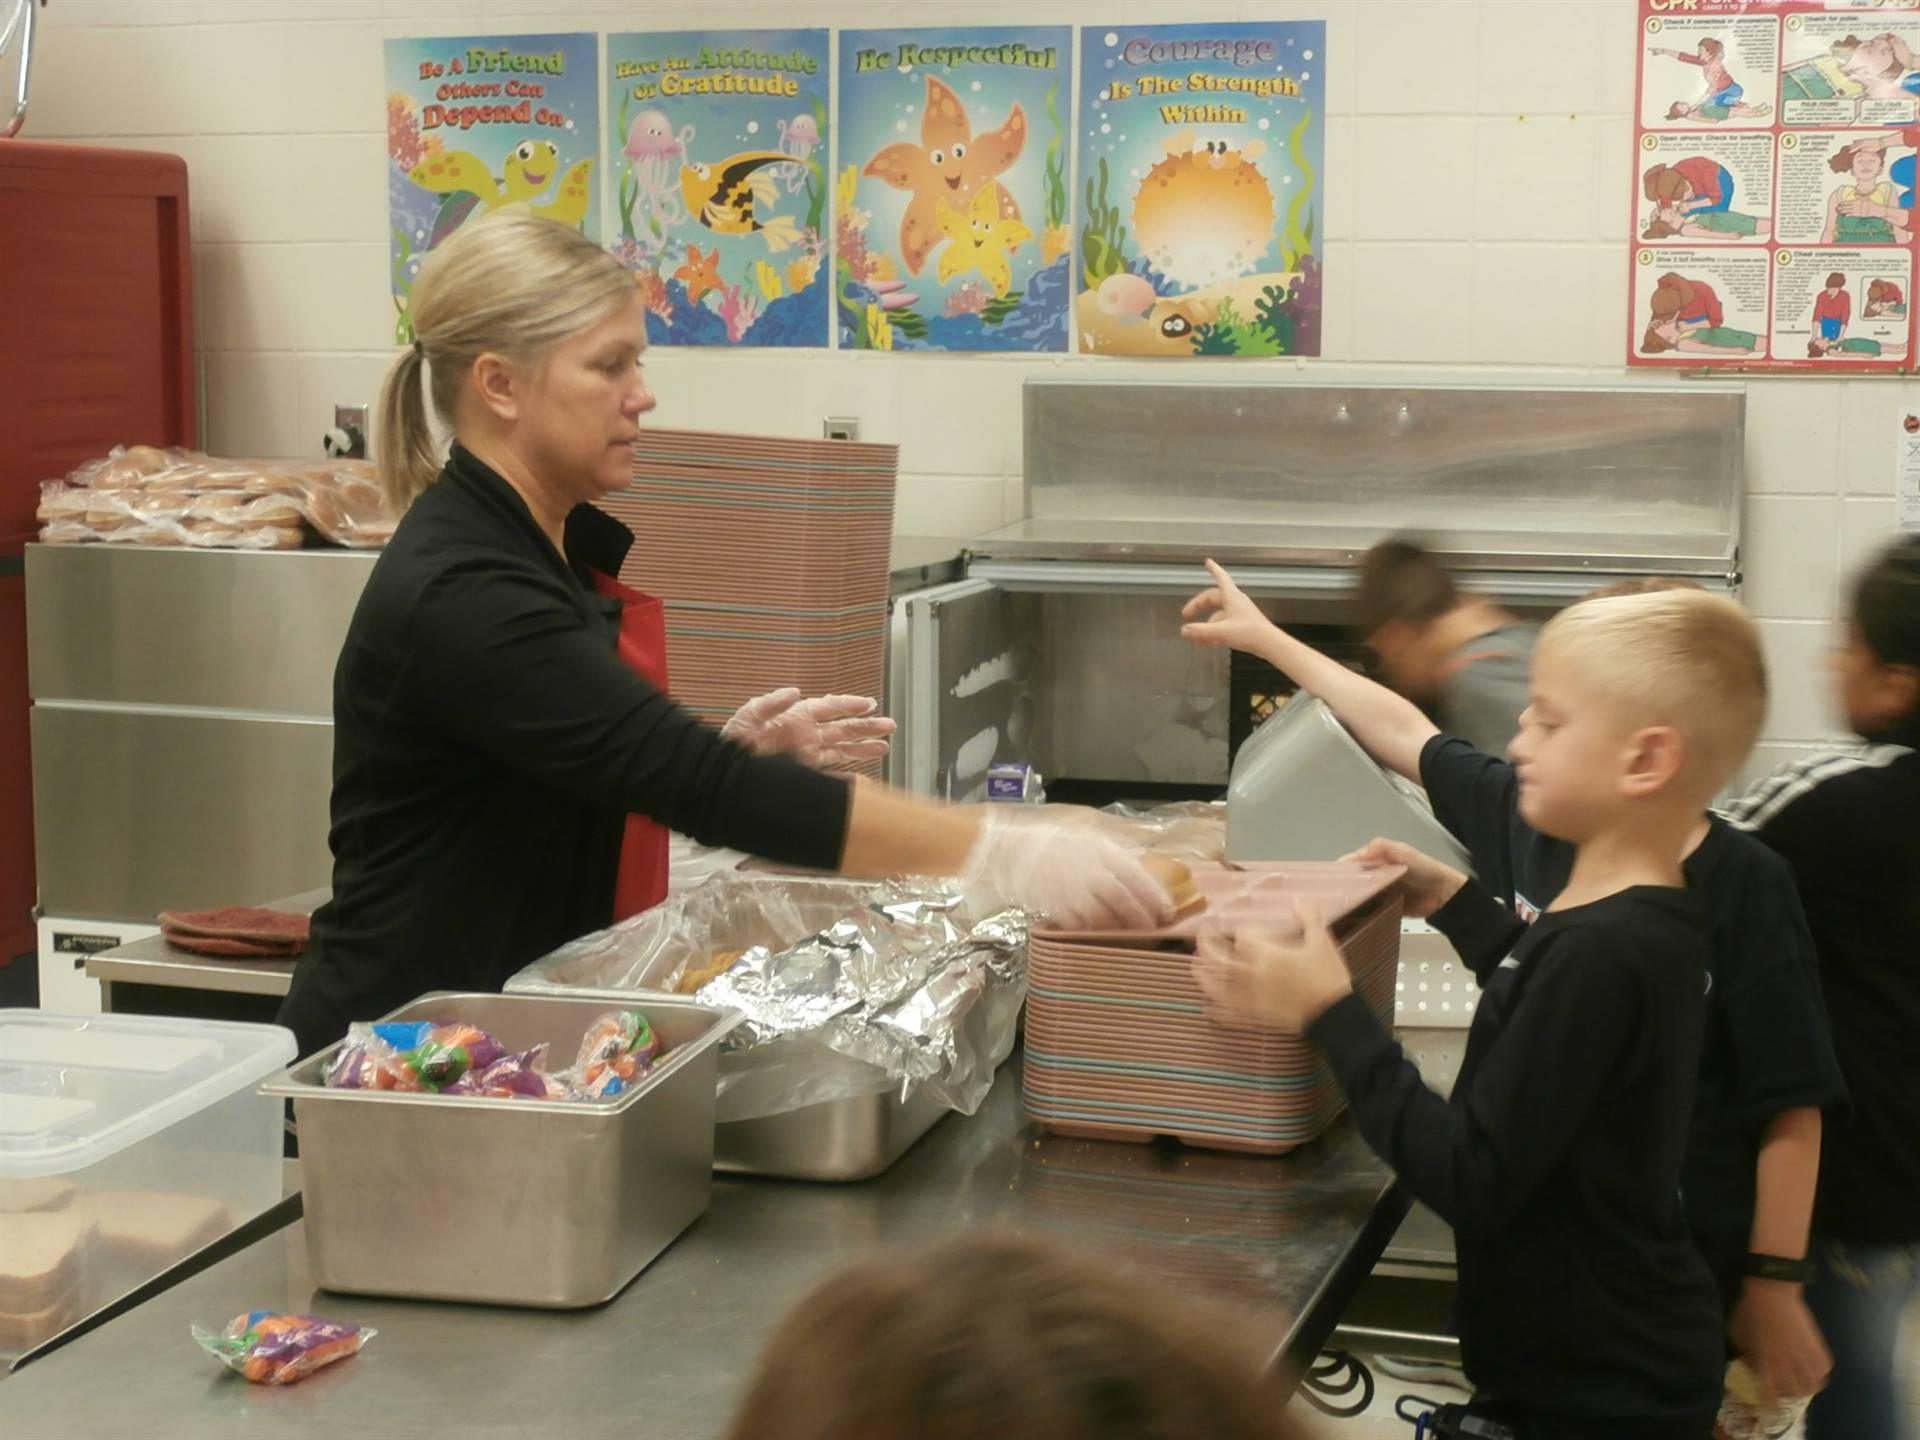 Food Service Worker serving lunch to students